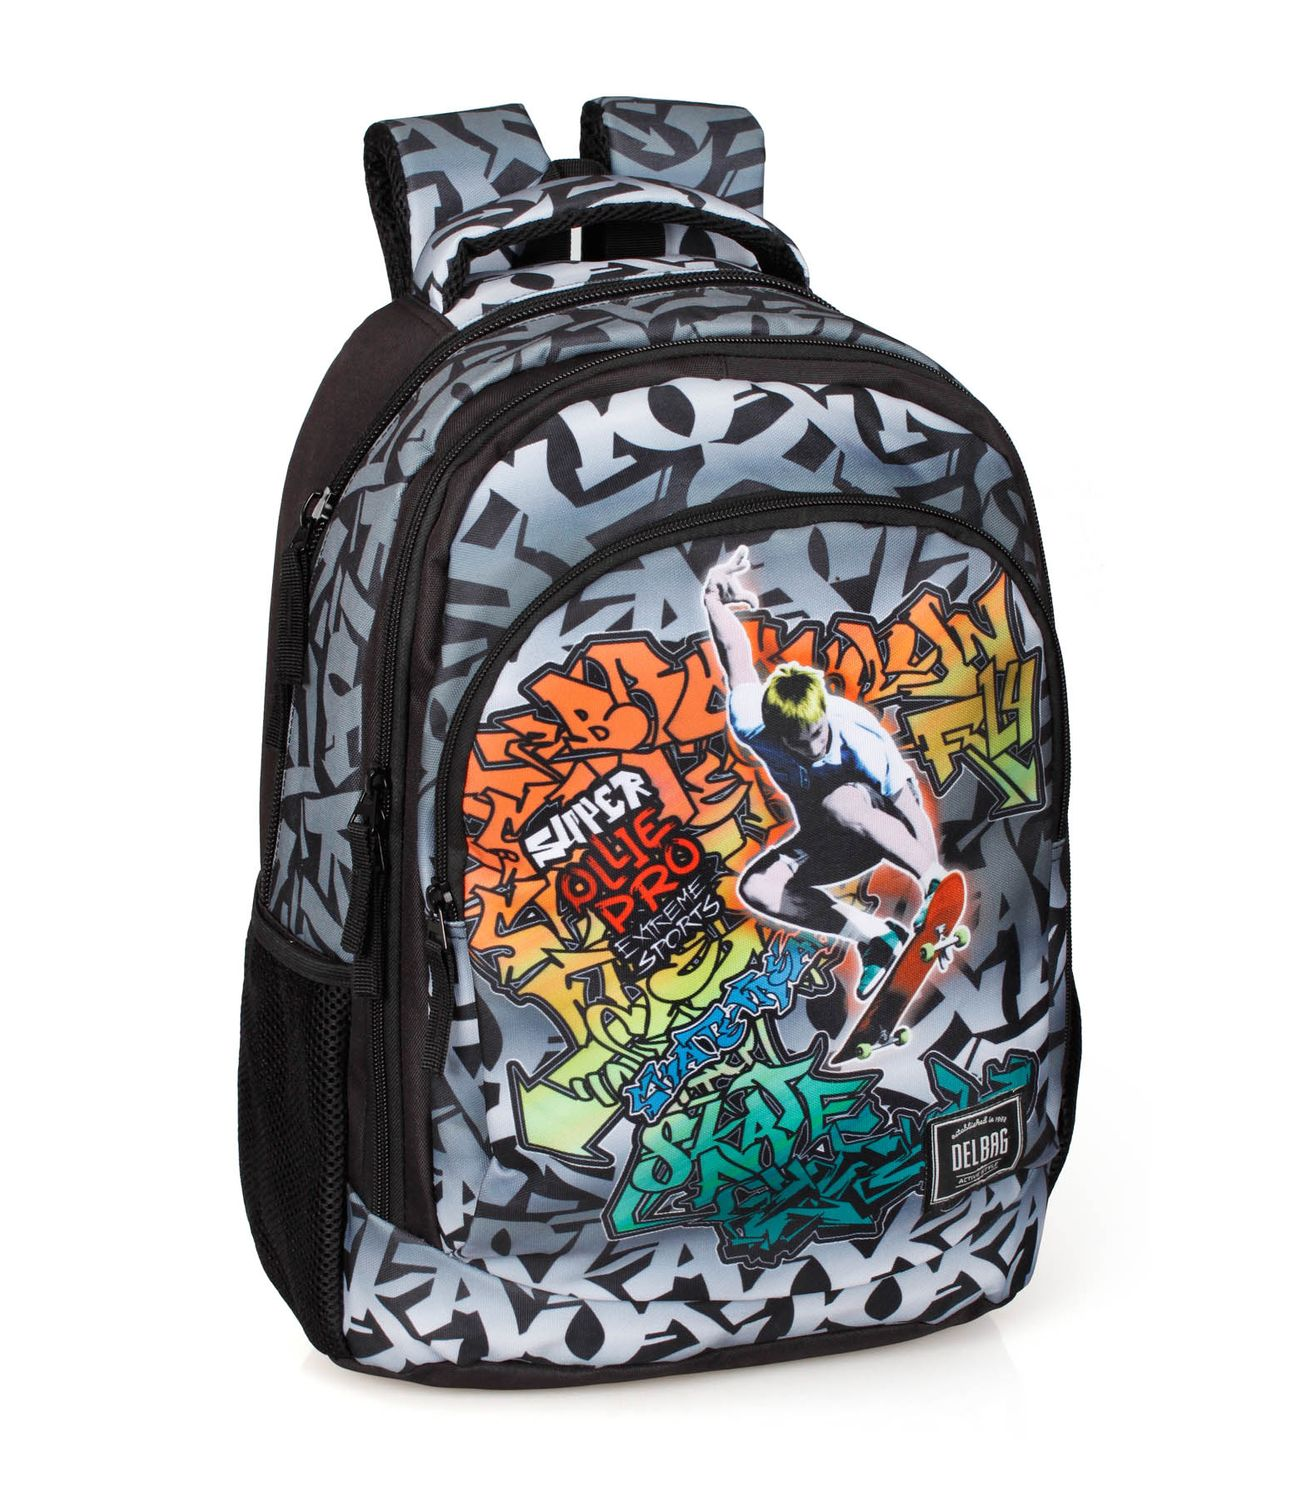 Triple Backpack Rucksack GRAFFITI SKATE – image 1